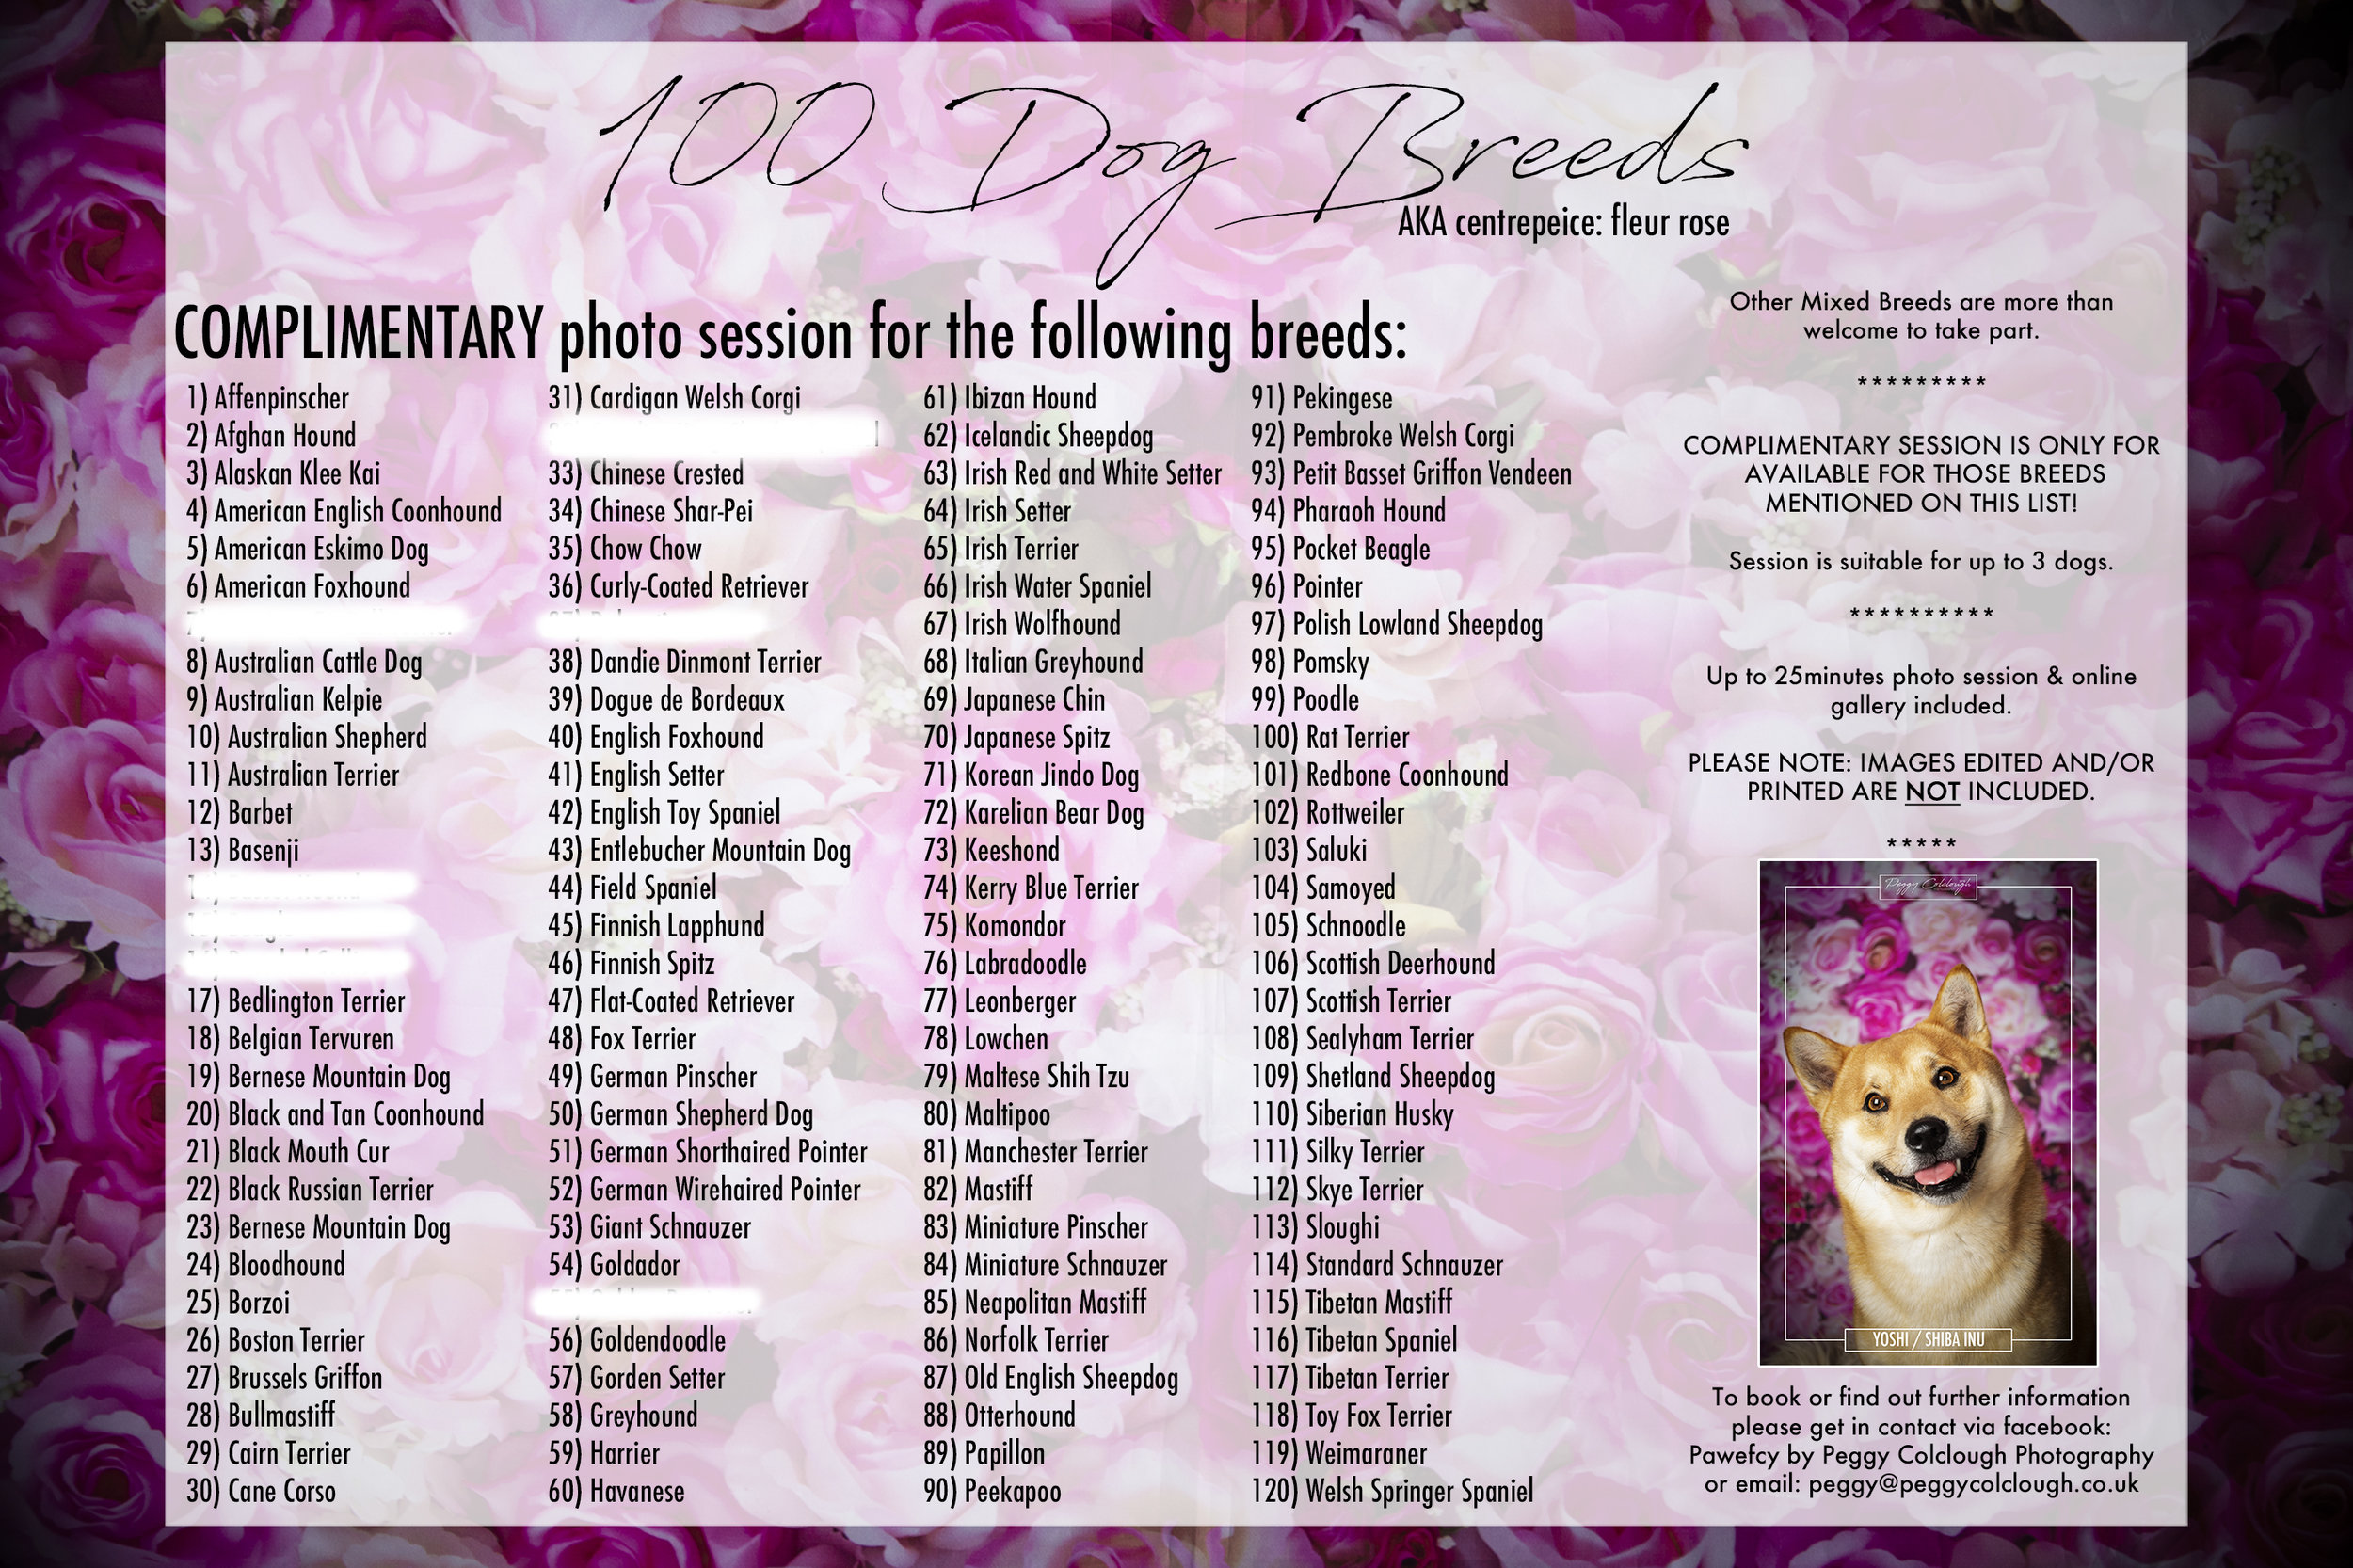 Please get in contact with Peggy if you see your breed(s) mentioned in this list.